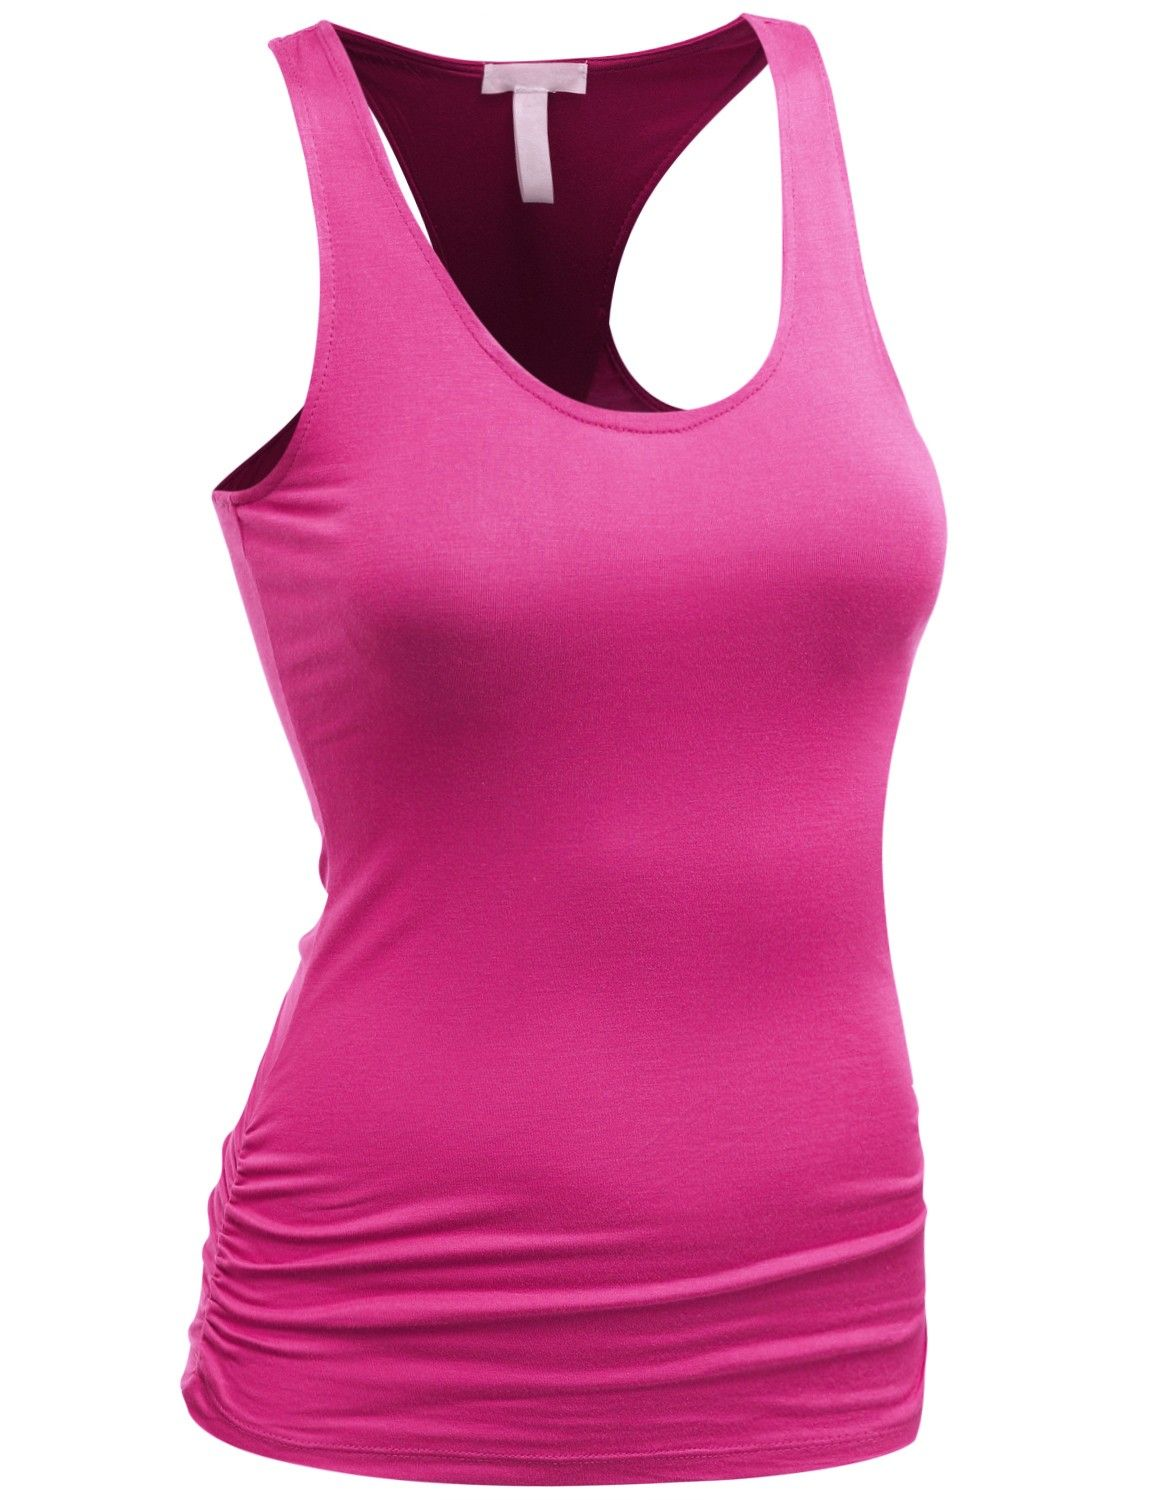 Doublju Women's Basic Tank Top With Shirring Detail (AWTTK0119) #doublju